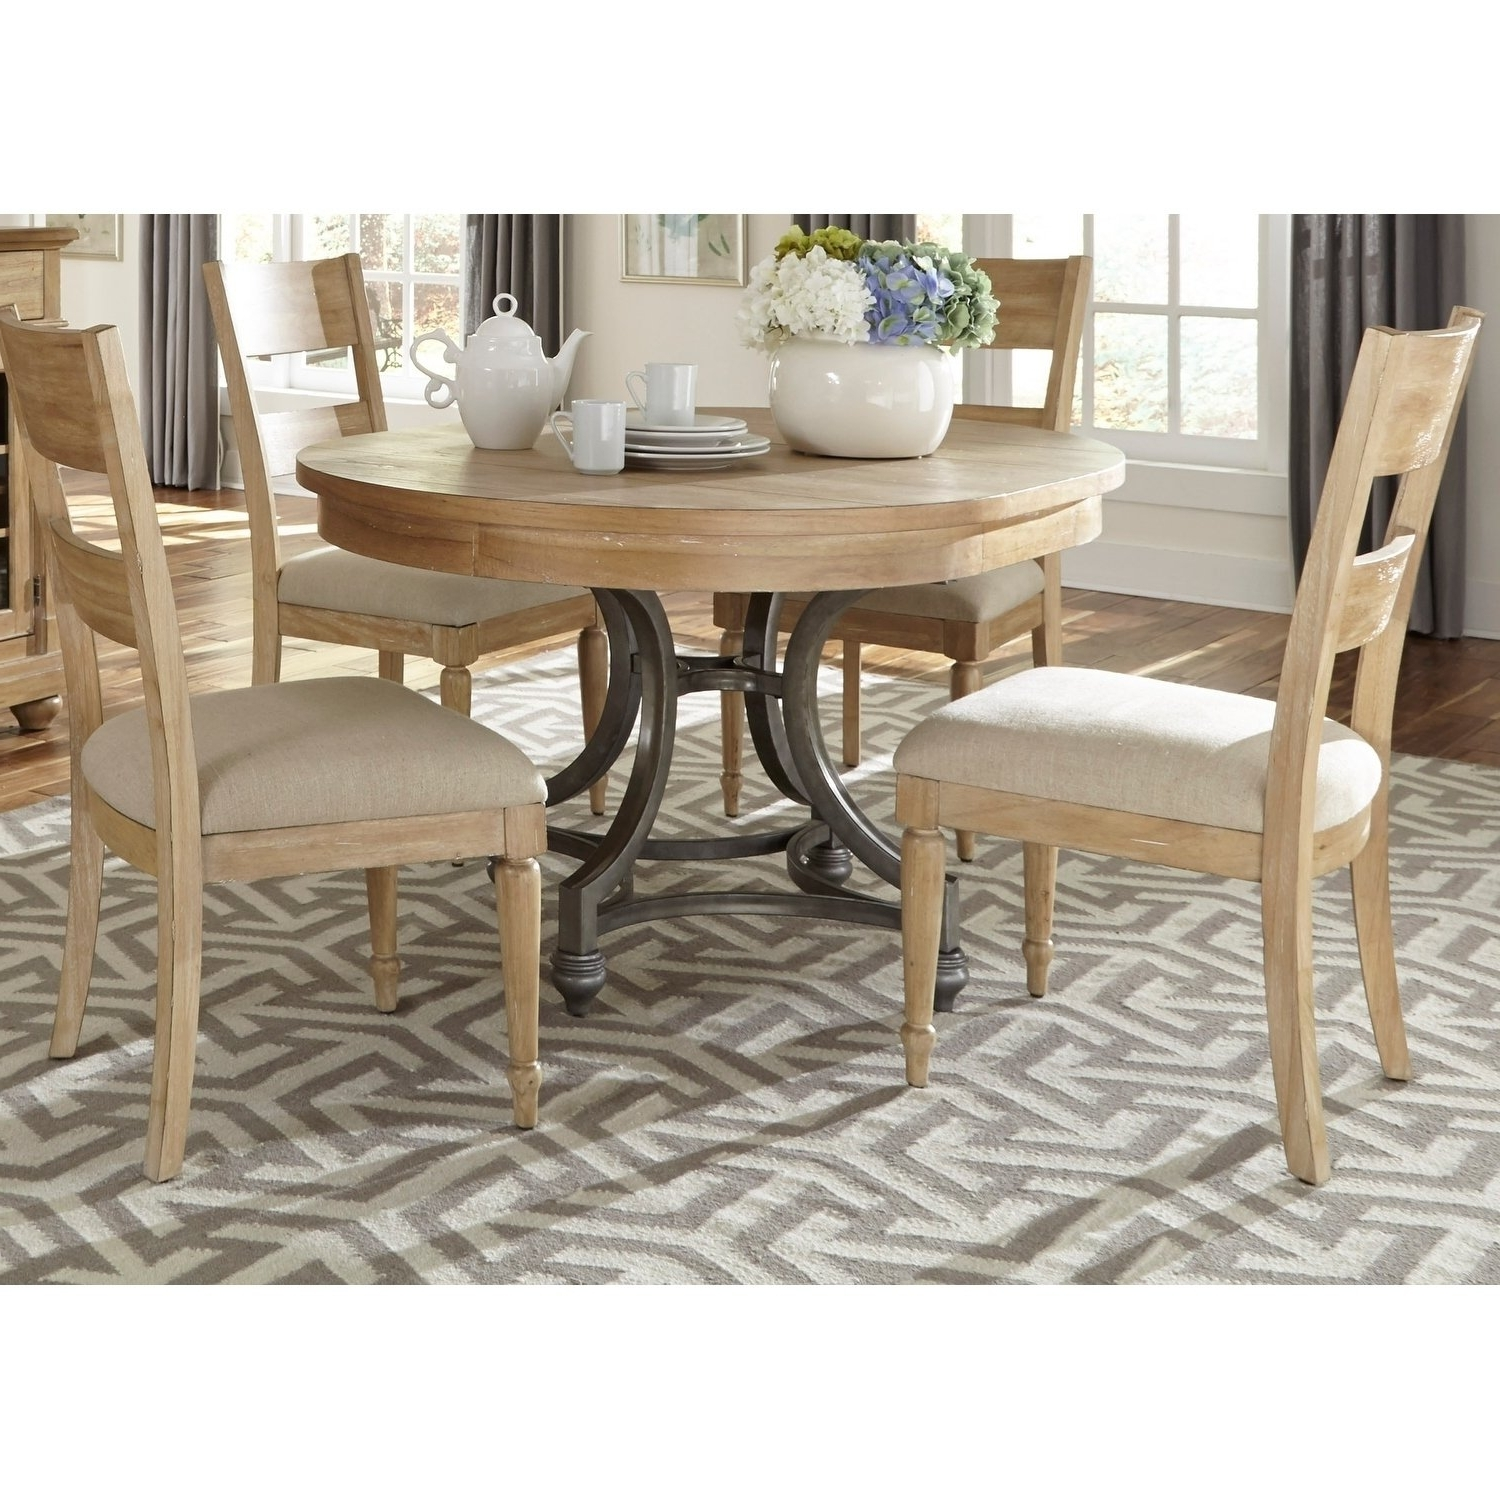 Jaxon 5 Piece Extension Counter Sets With Wood Stools Inside Popular Shop Harbor View Sand 5 Piece Round Table Set – On Sale – Free (Gallery 23 of 25)